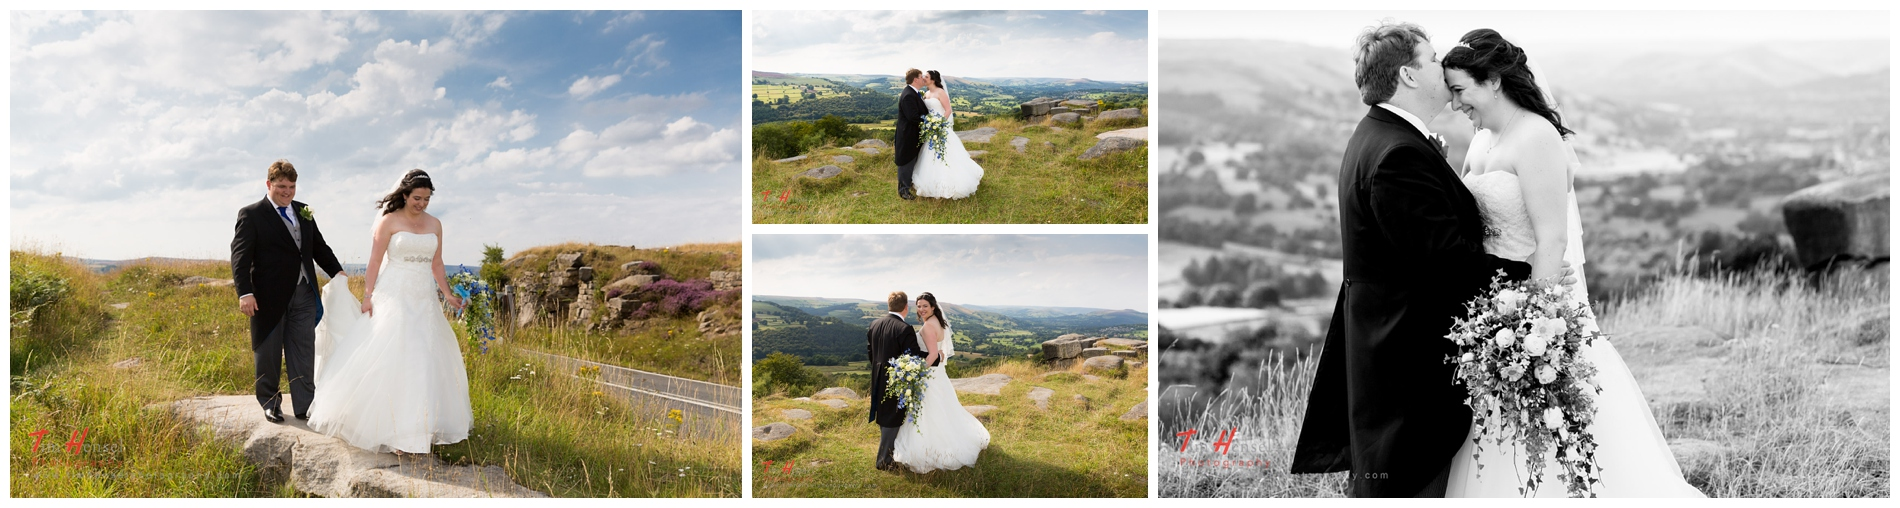 creative, natural wedding photography in derbyshire